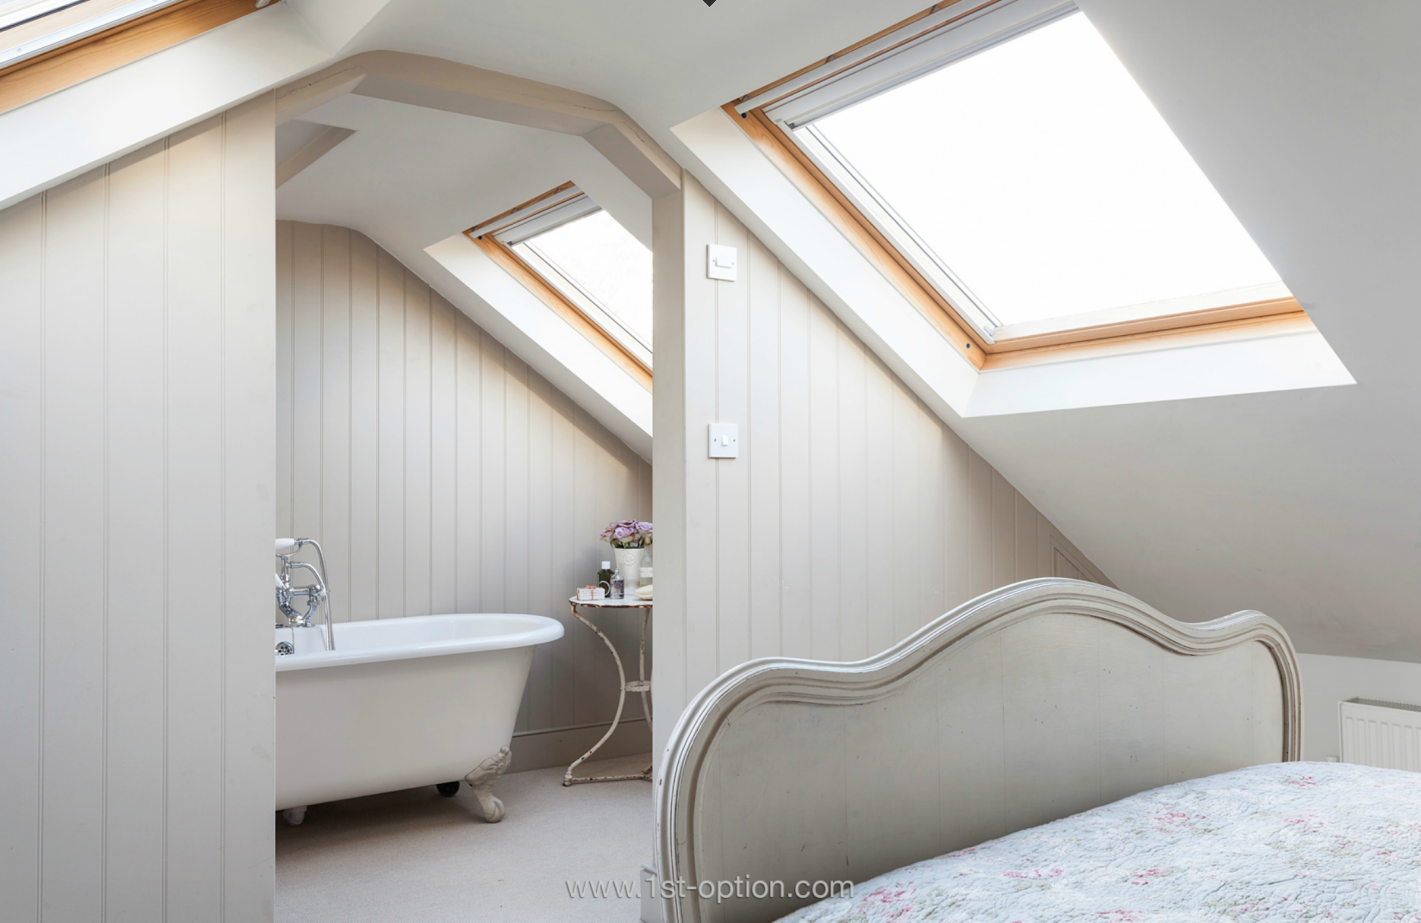 Loft conversion bedroom with en suite  uHuOuMuEu  Pinterest  Loft